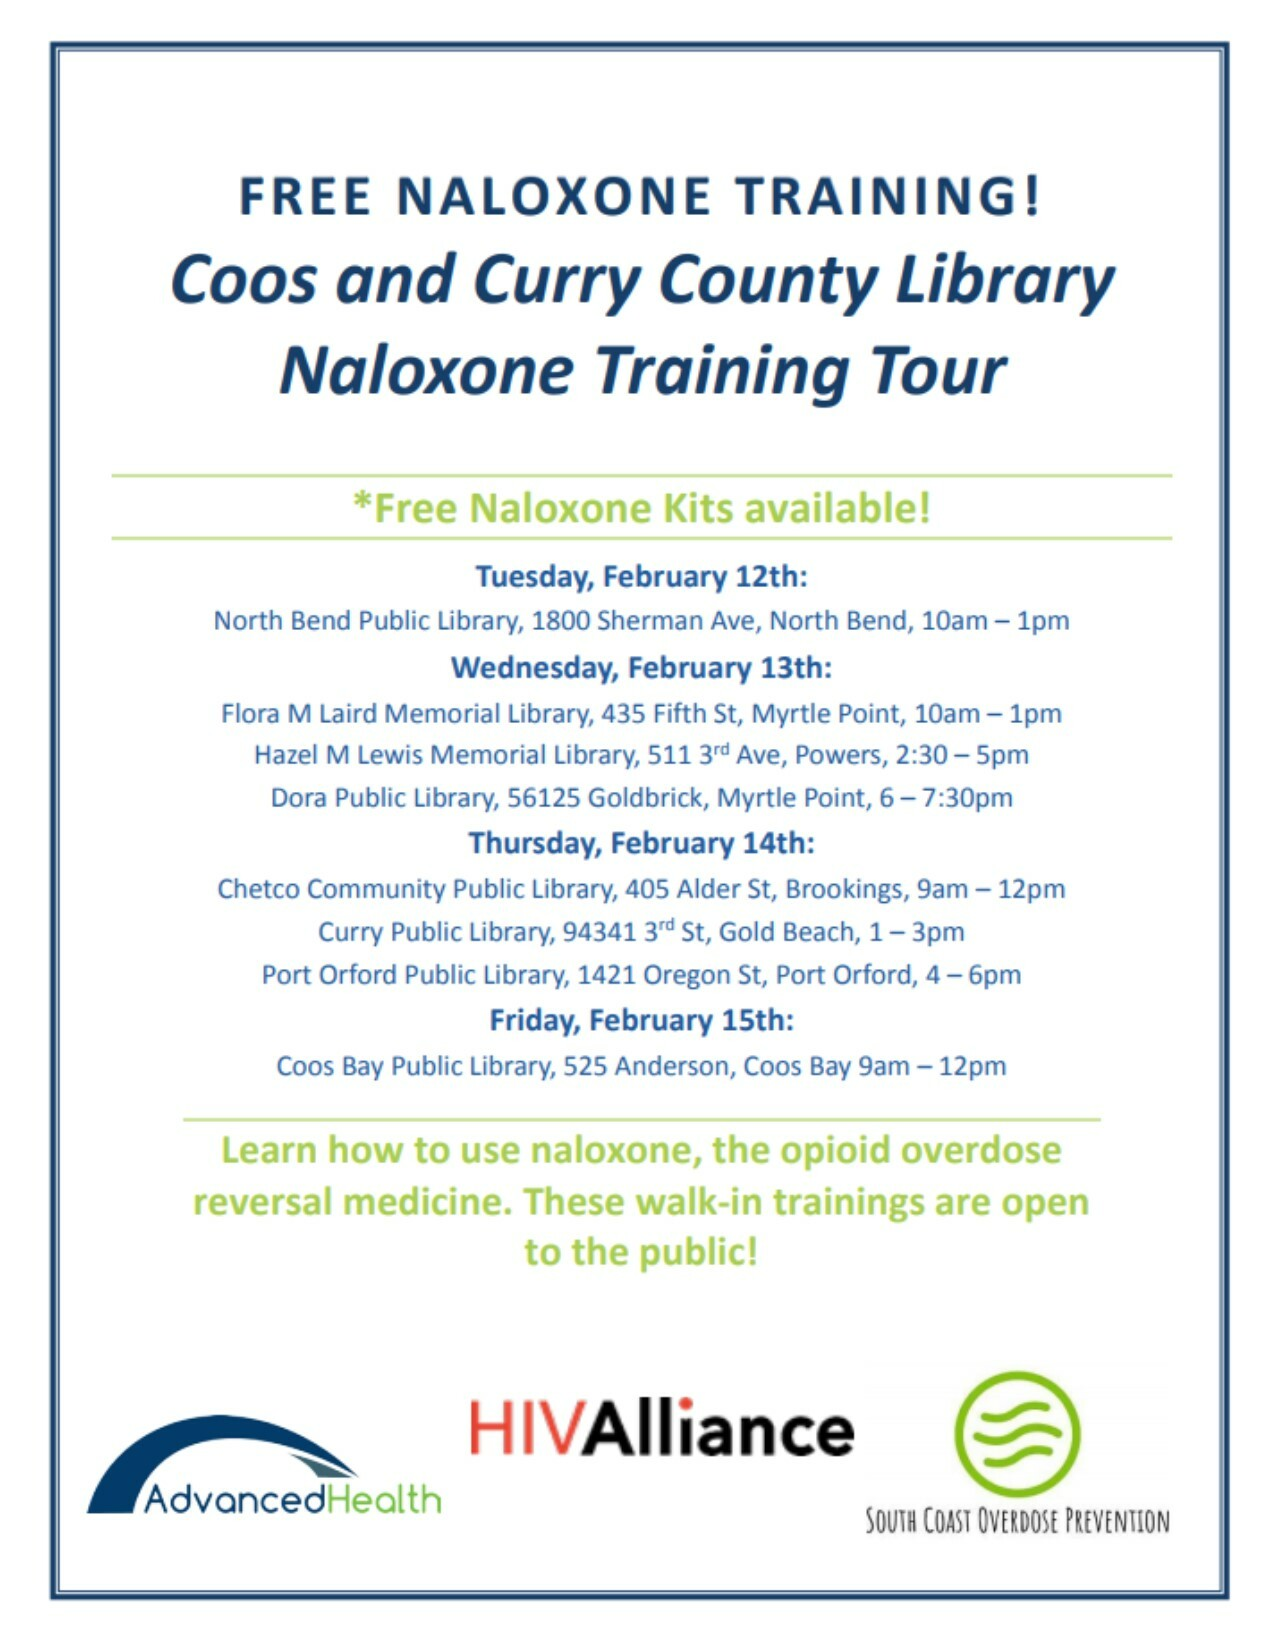 02.14.2019 Naloxone Training